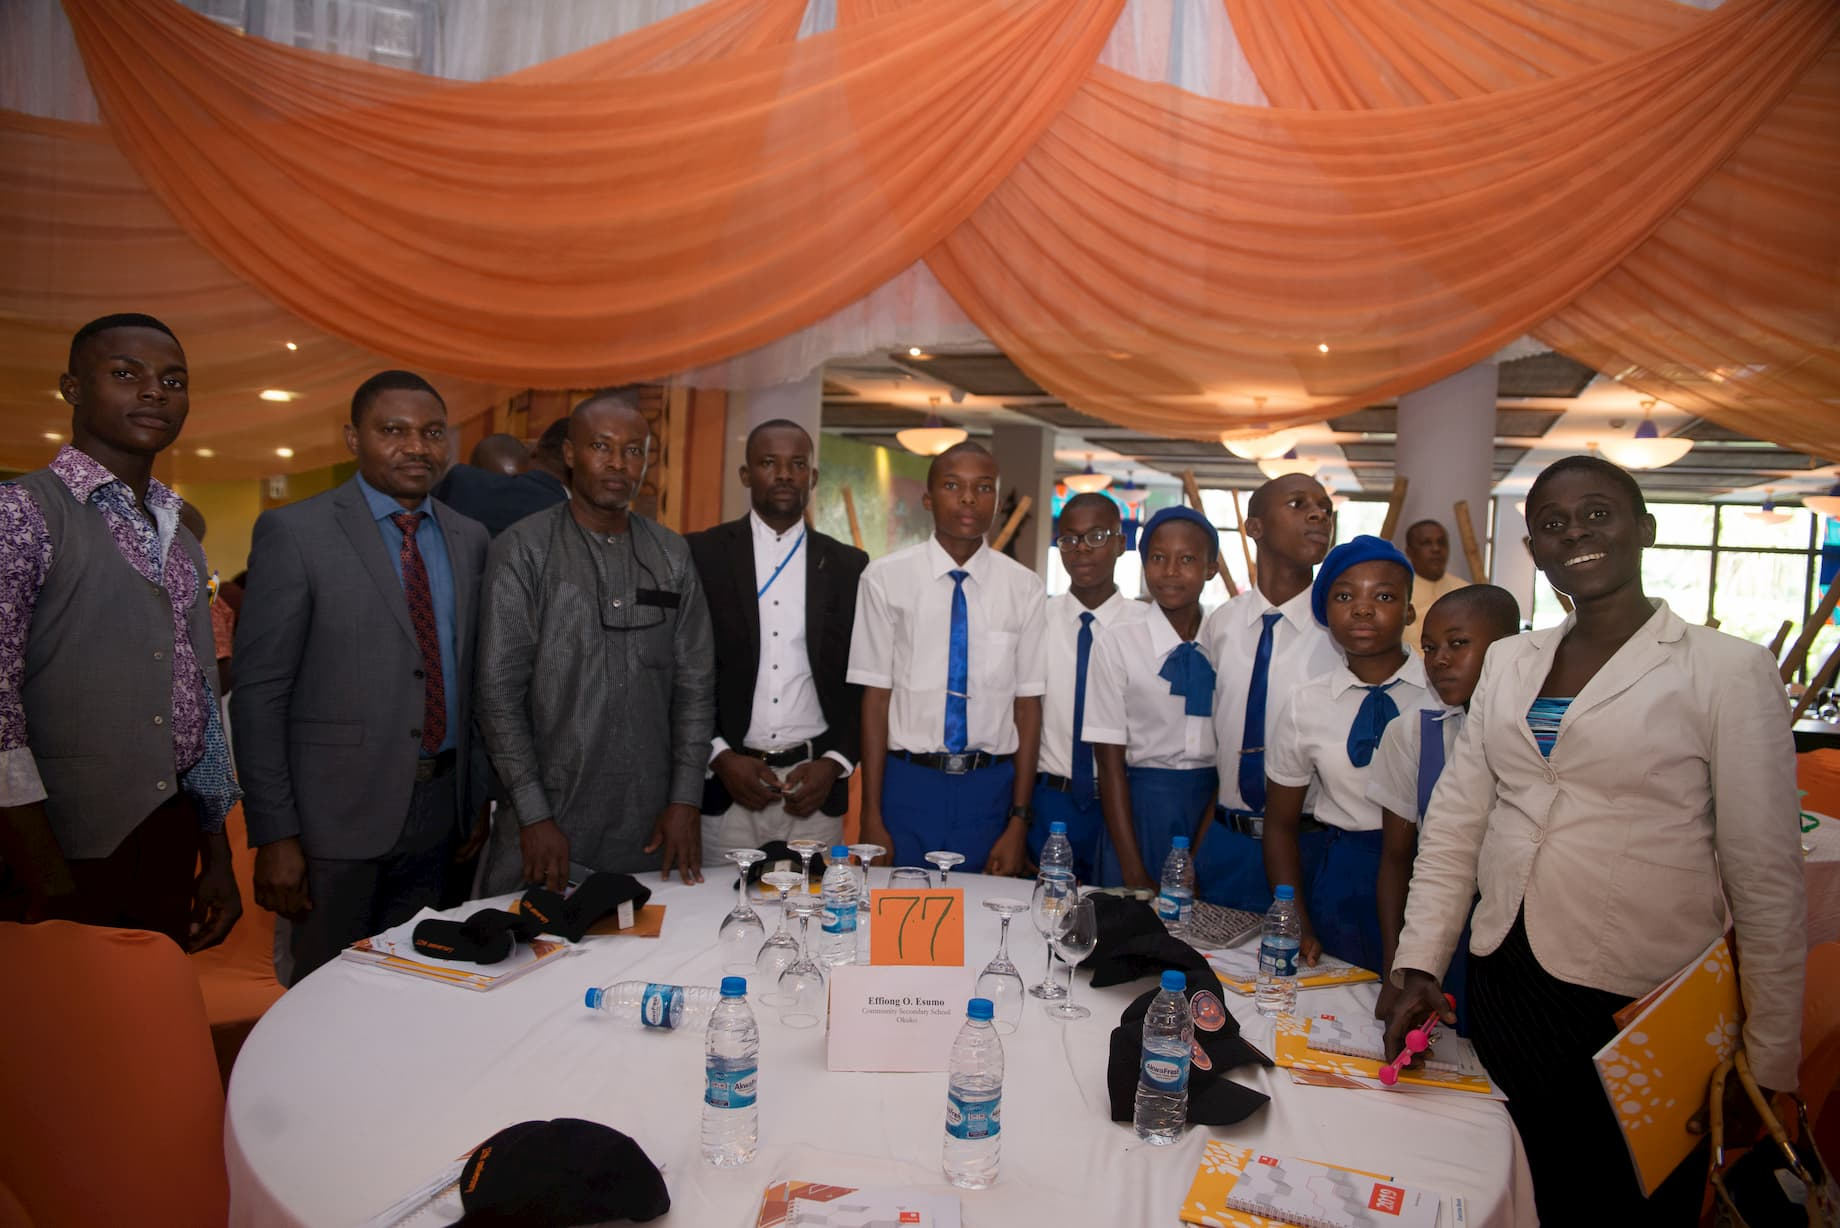 Mr. Esumo Effiong and the students of his adopted school Com. Sec. Sch. Okuko